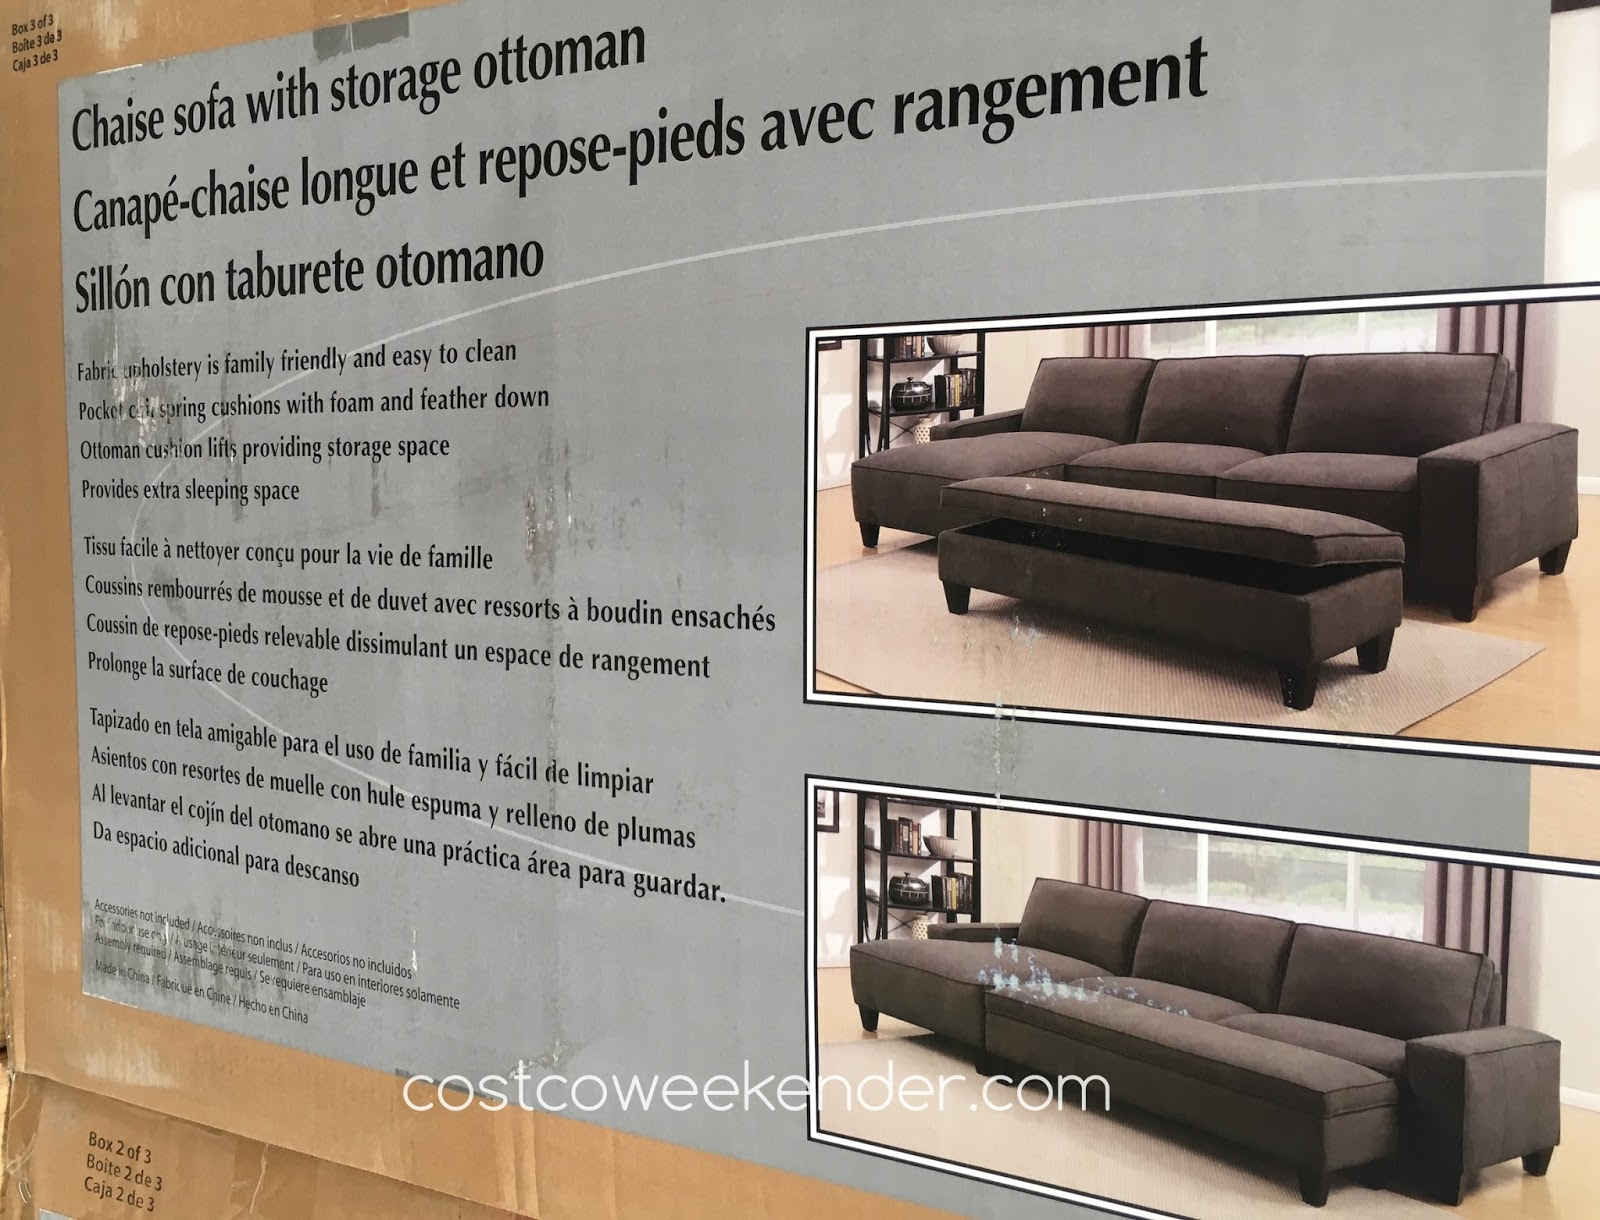 Chaise Sofa With Ottoman Costco 3 2 Seater Offers Storage Weekender